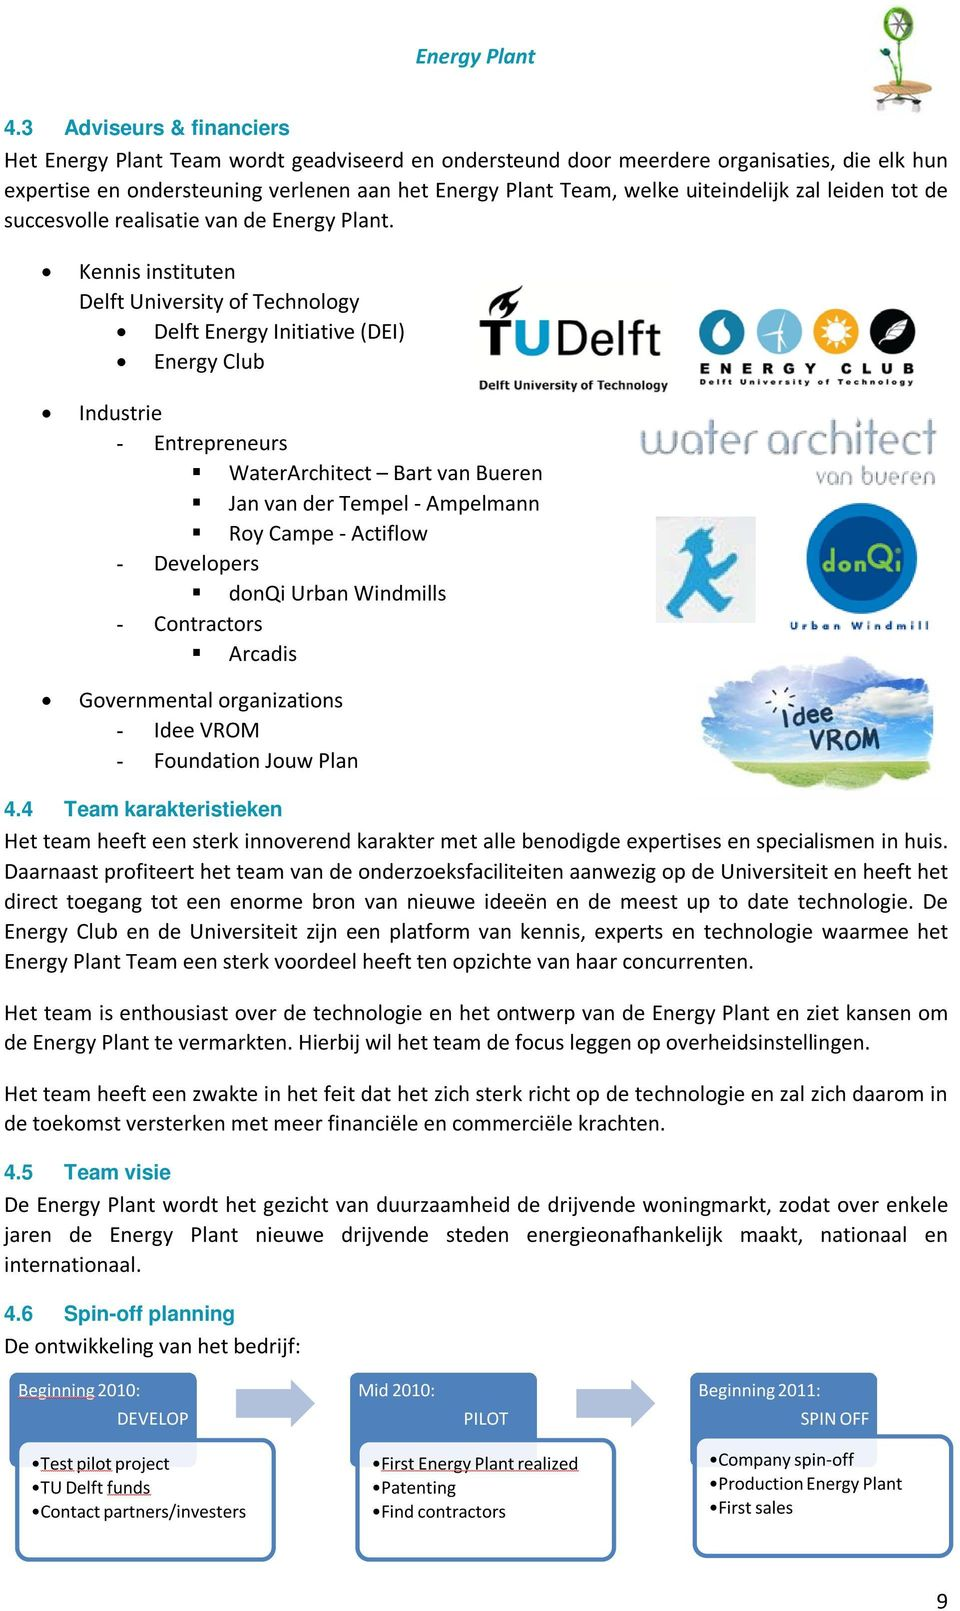 Kennis instituten Delft University of Technology Delft Energy Initiative (DEI) Energy Club Industrie - Entrepreneurs WaterArchitect Bart van Bueren Jan van der Tempel - Ampelmann Roy Campe - Actiflow